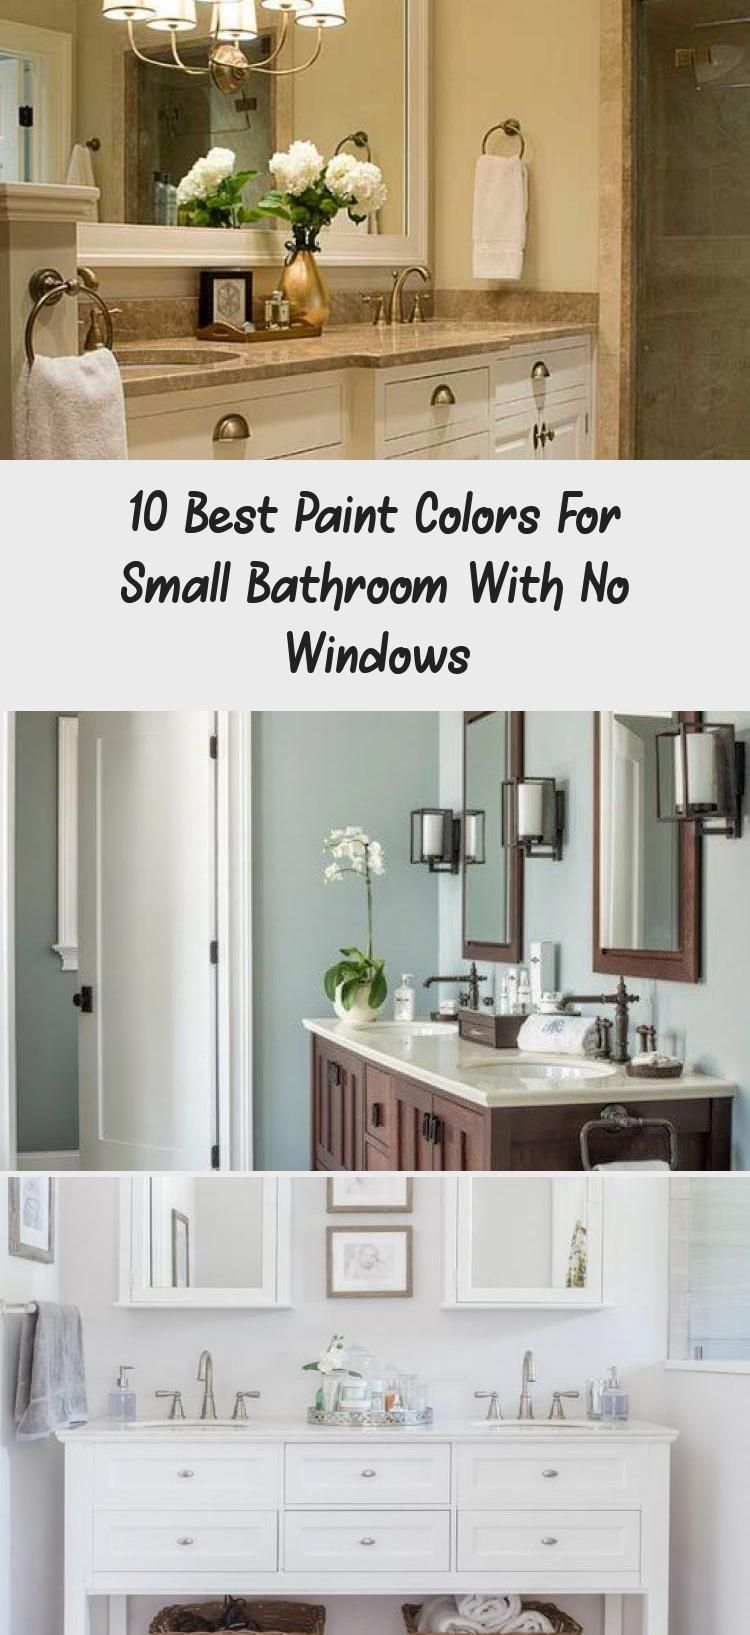 Best Paint Colors For Small Bathrooms Without Windows